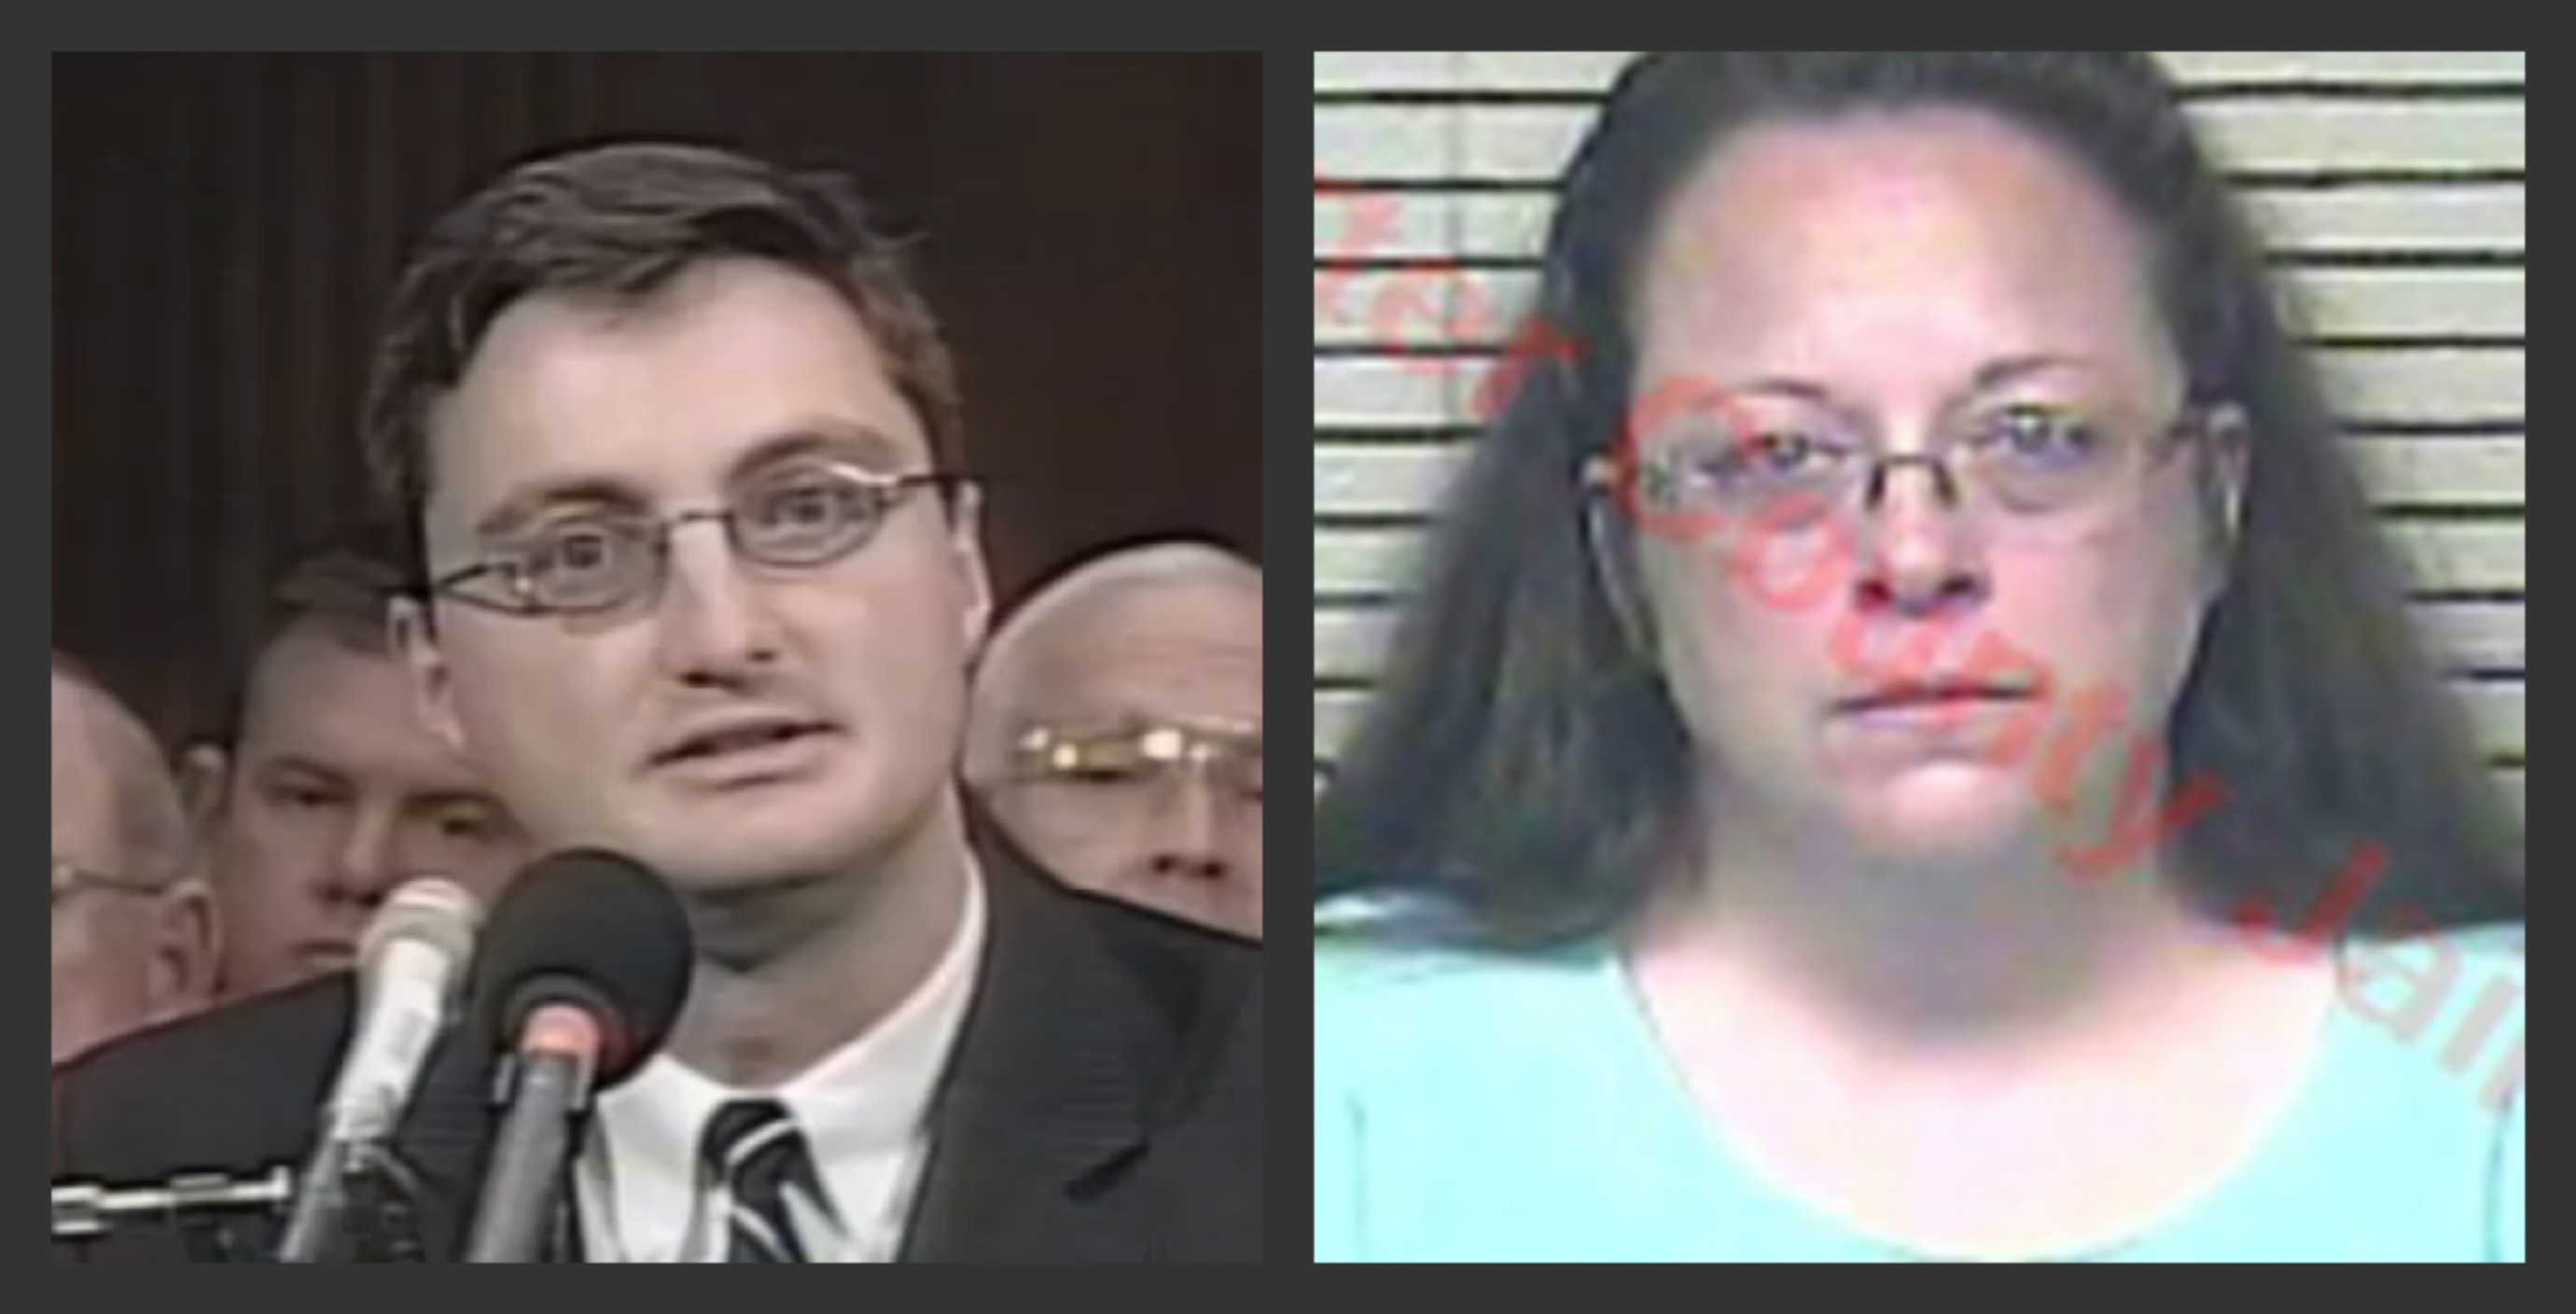 Judge Who Jailed Kim Davis Also Ordered Opposition to Sodomites to be Re-Educated